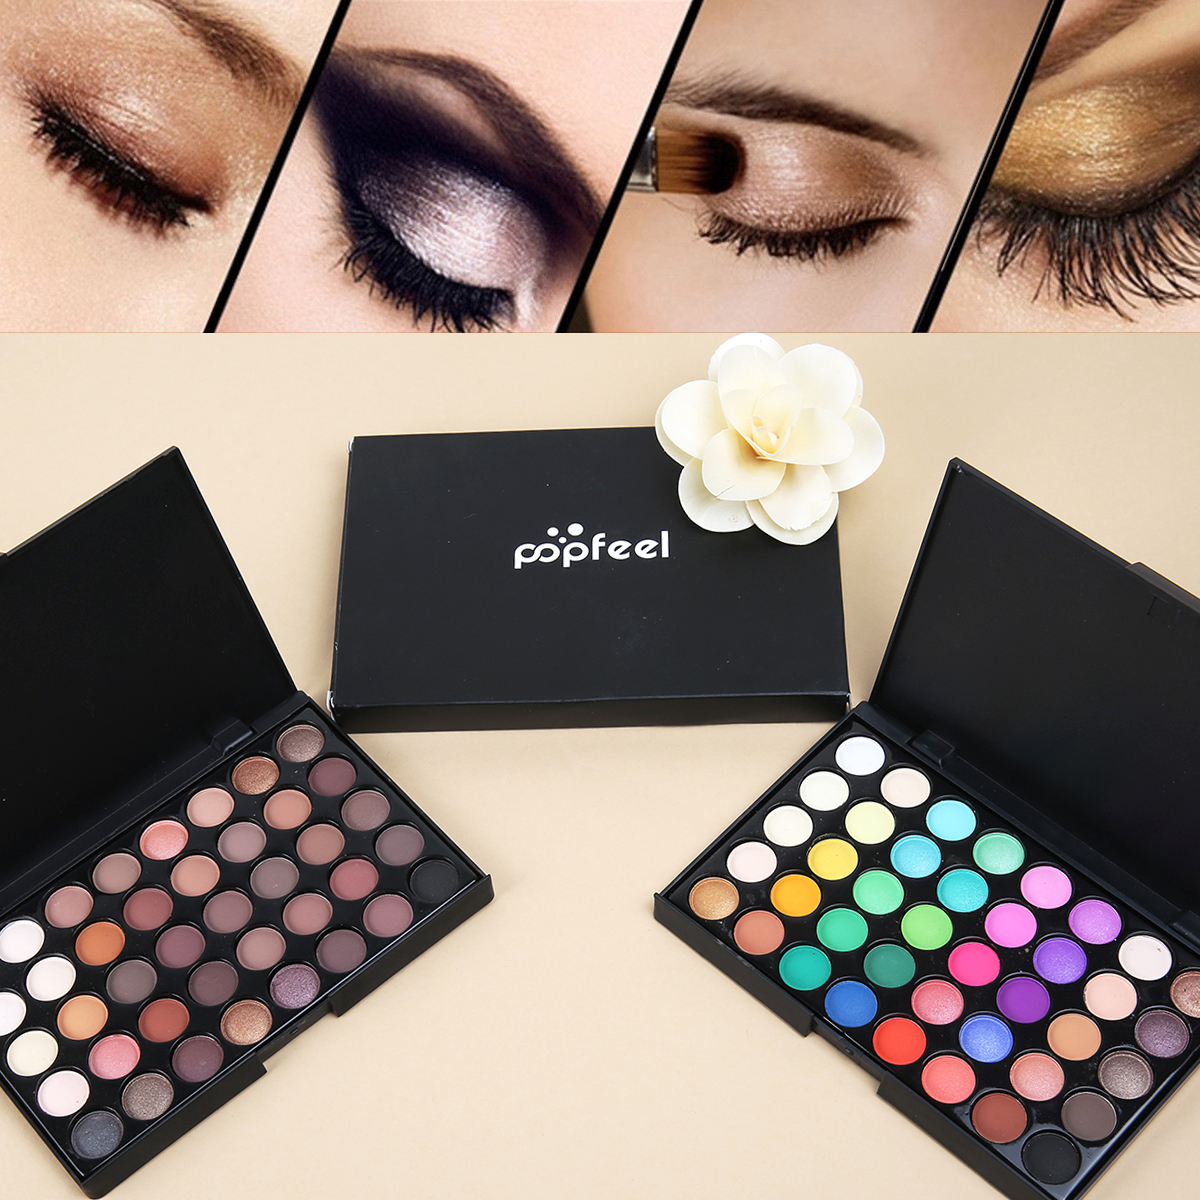 Banggood 40 Colors Mini Eyeshadow Palette